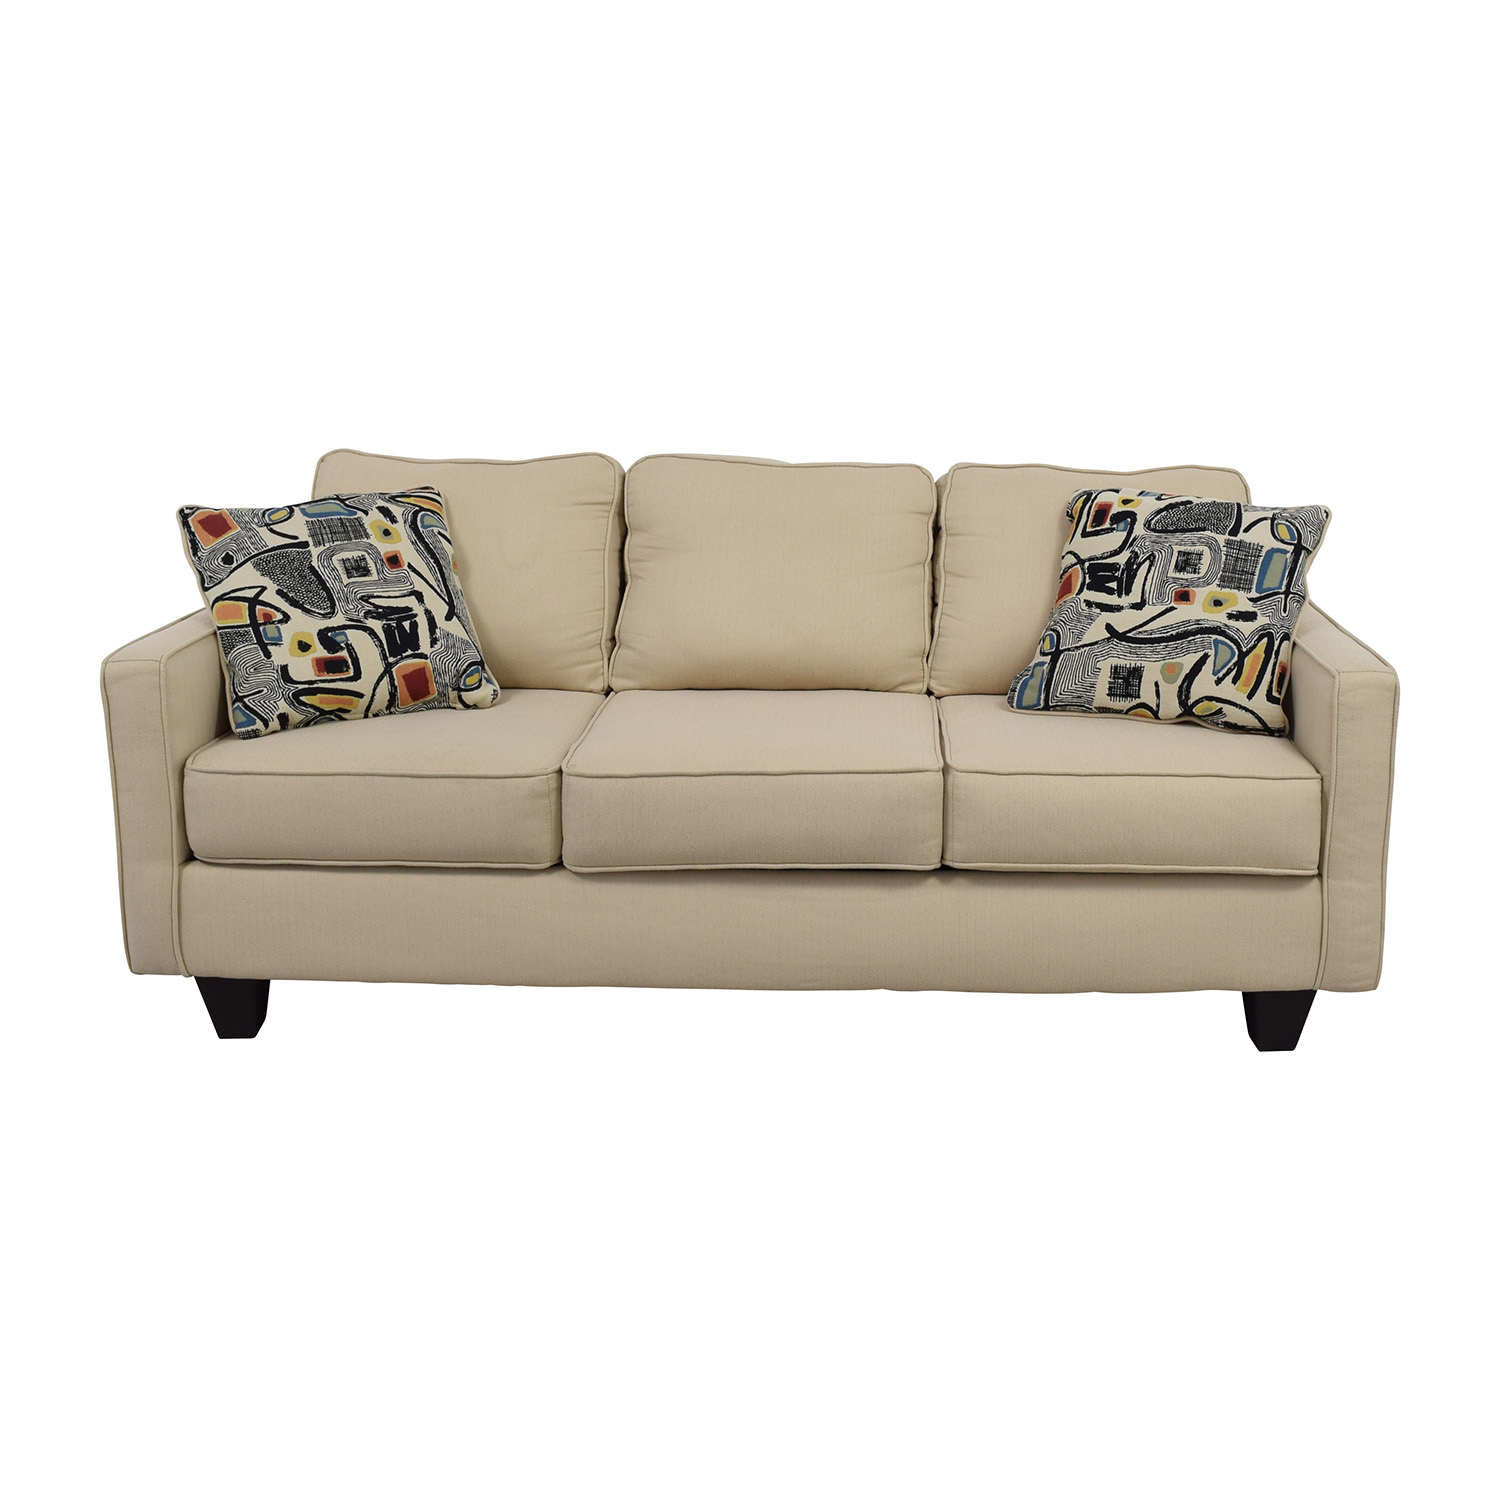 Charmant Shop Wayfair AllModern Three Cushion Beige Couch With Two Pillows Wayfair  Sofas ...